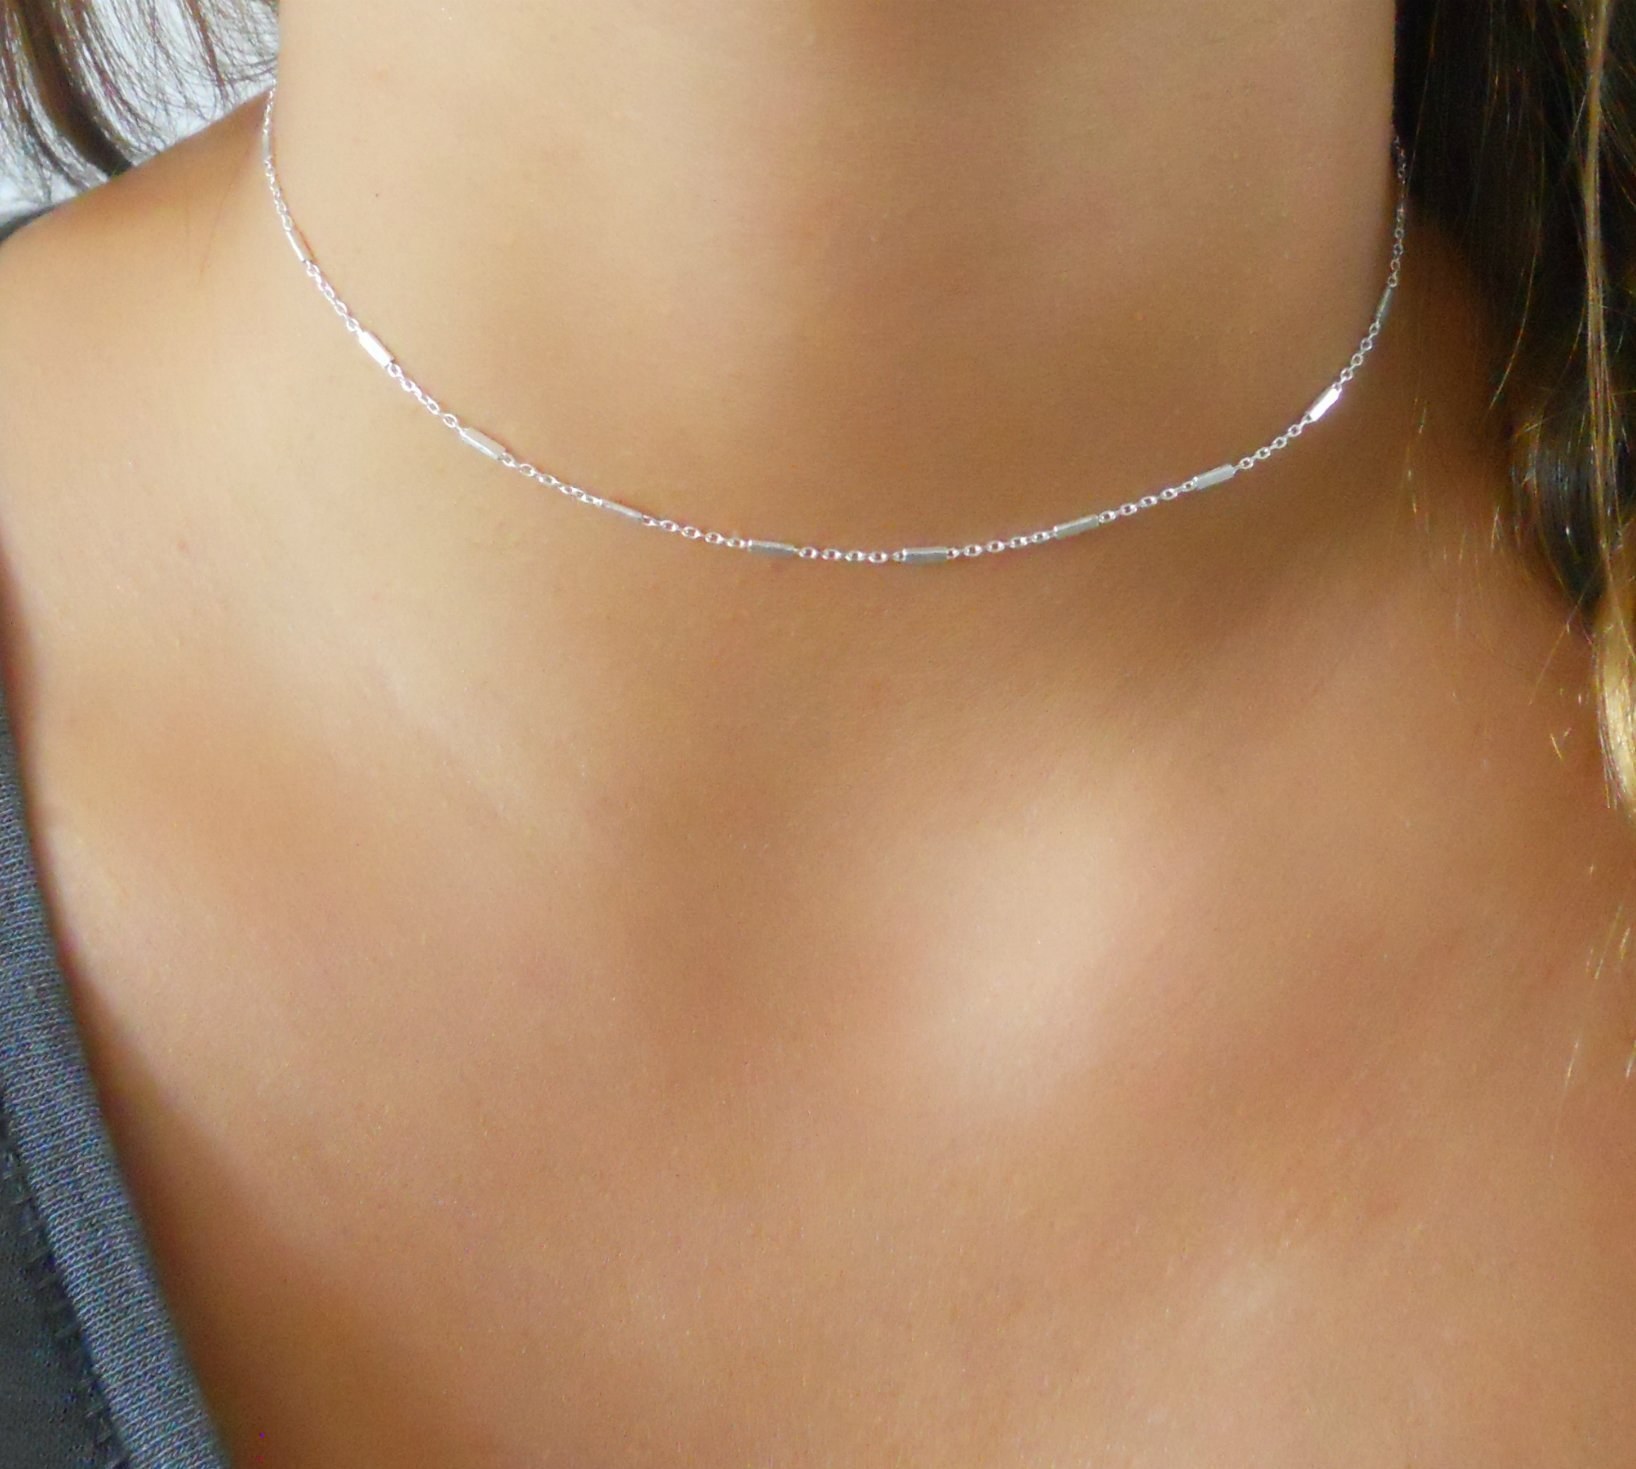 Handmade Silver Choker Necklace For Women - 925 Sterling Silver Chain With Tiny Tubes